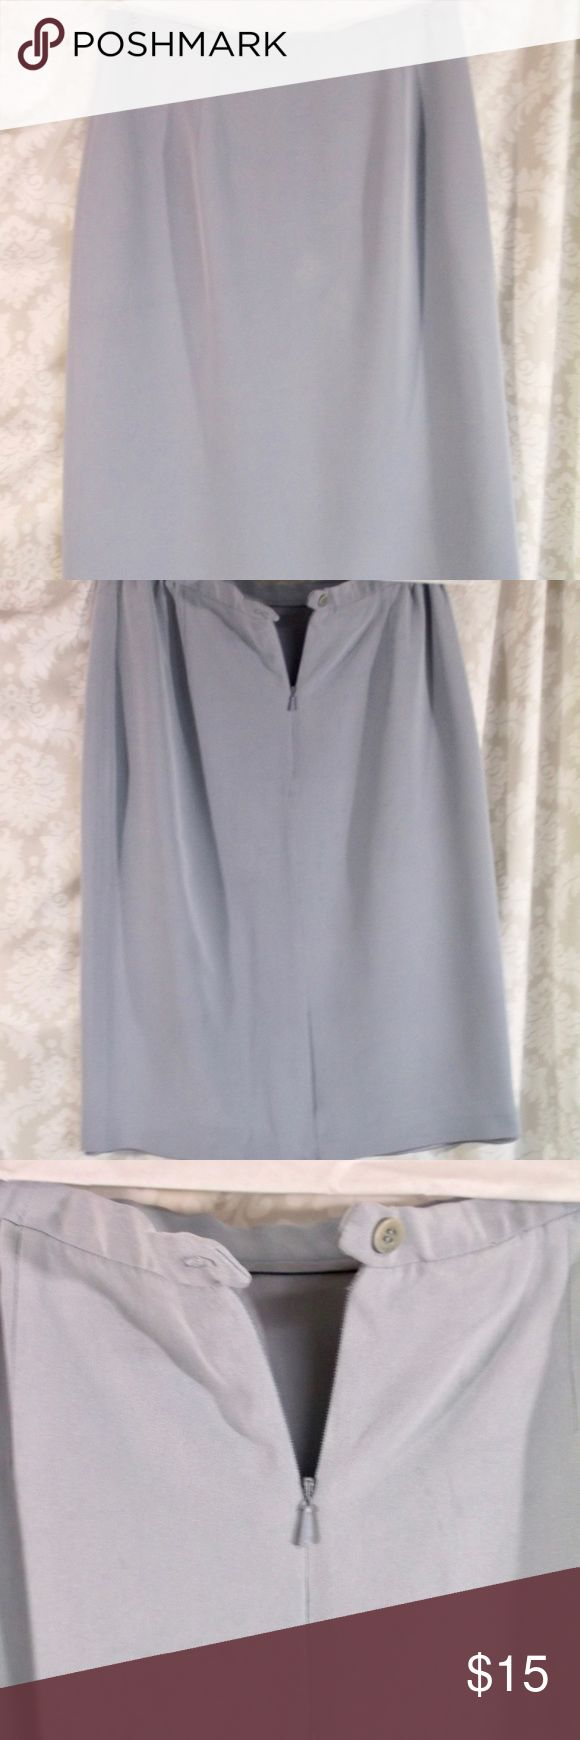 Jones New York Pale Blue pencil skirt 6 Jones New York Pale Blue pencil skirt 6  Vintage purchased 1993  Jones New York  Size:  6 The skirt has an unusual color a very PALE blue with a near grey tint (SEE PHOTOS) Back zipper and button  A slit at the back hem has not been opened yet 100% Silk Dry Clean Only  Pre Owned, no defects, tears, stains.. **Newly dry cleaned, see label.  Please let me know if you have any questions…. HAPPY to receive reasonable offers and encourage bundles!! Thank…